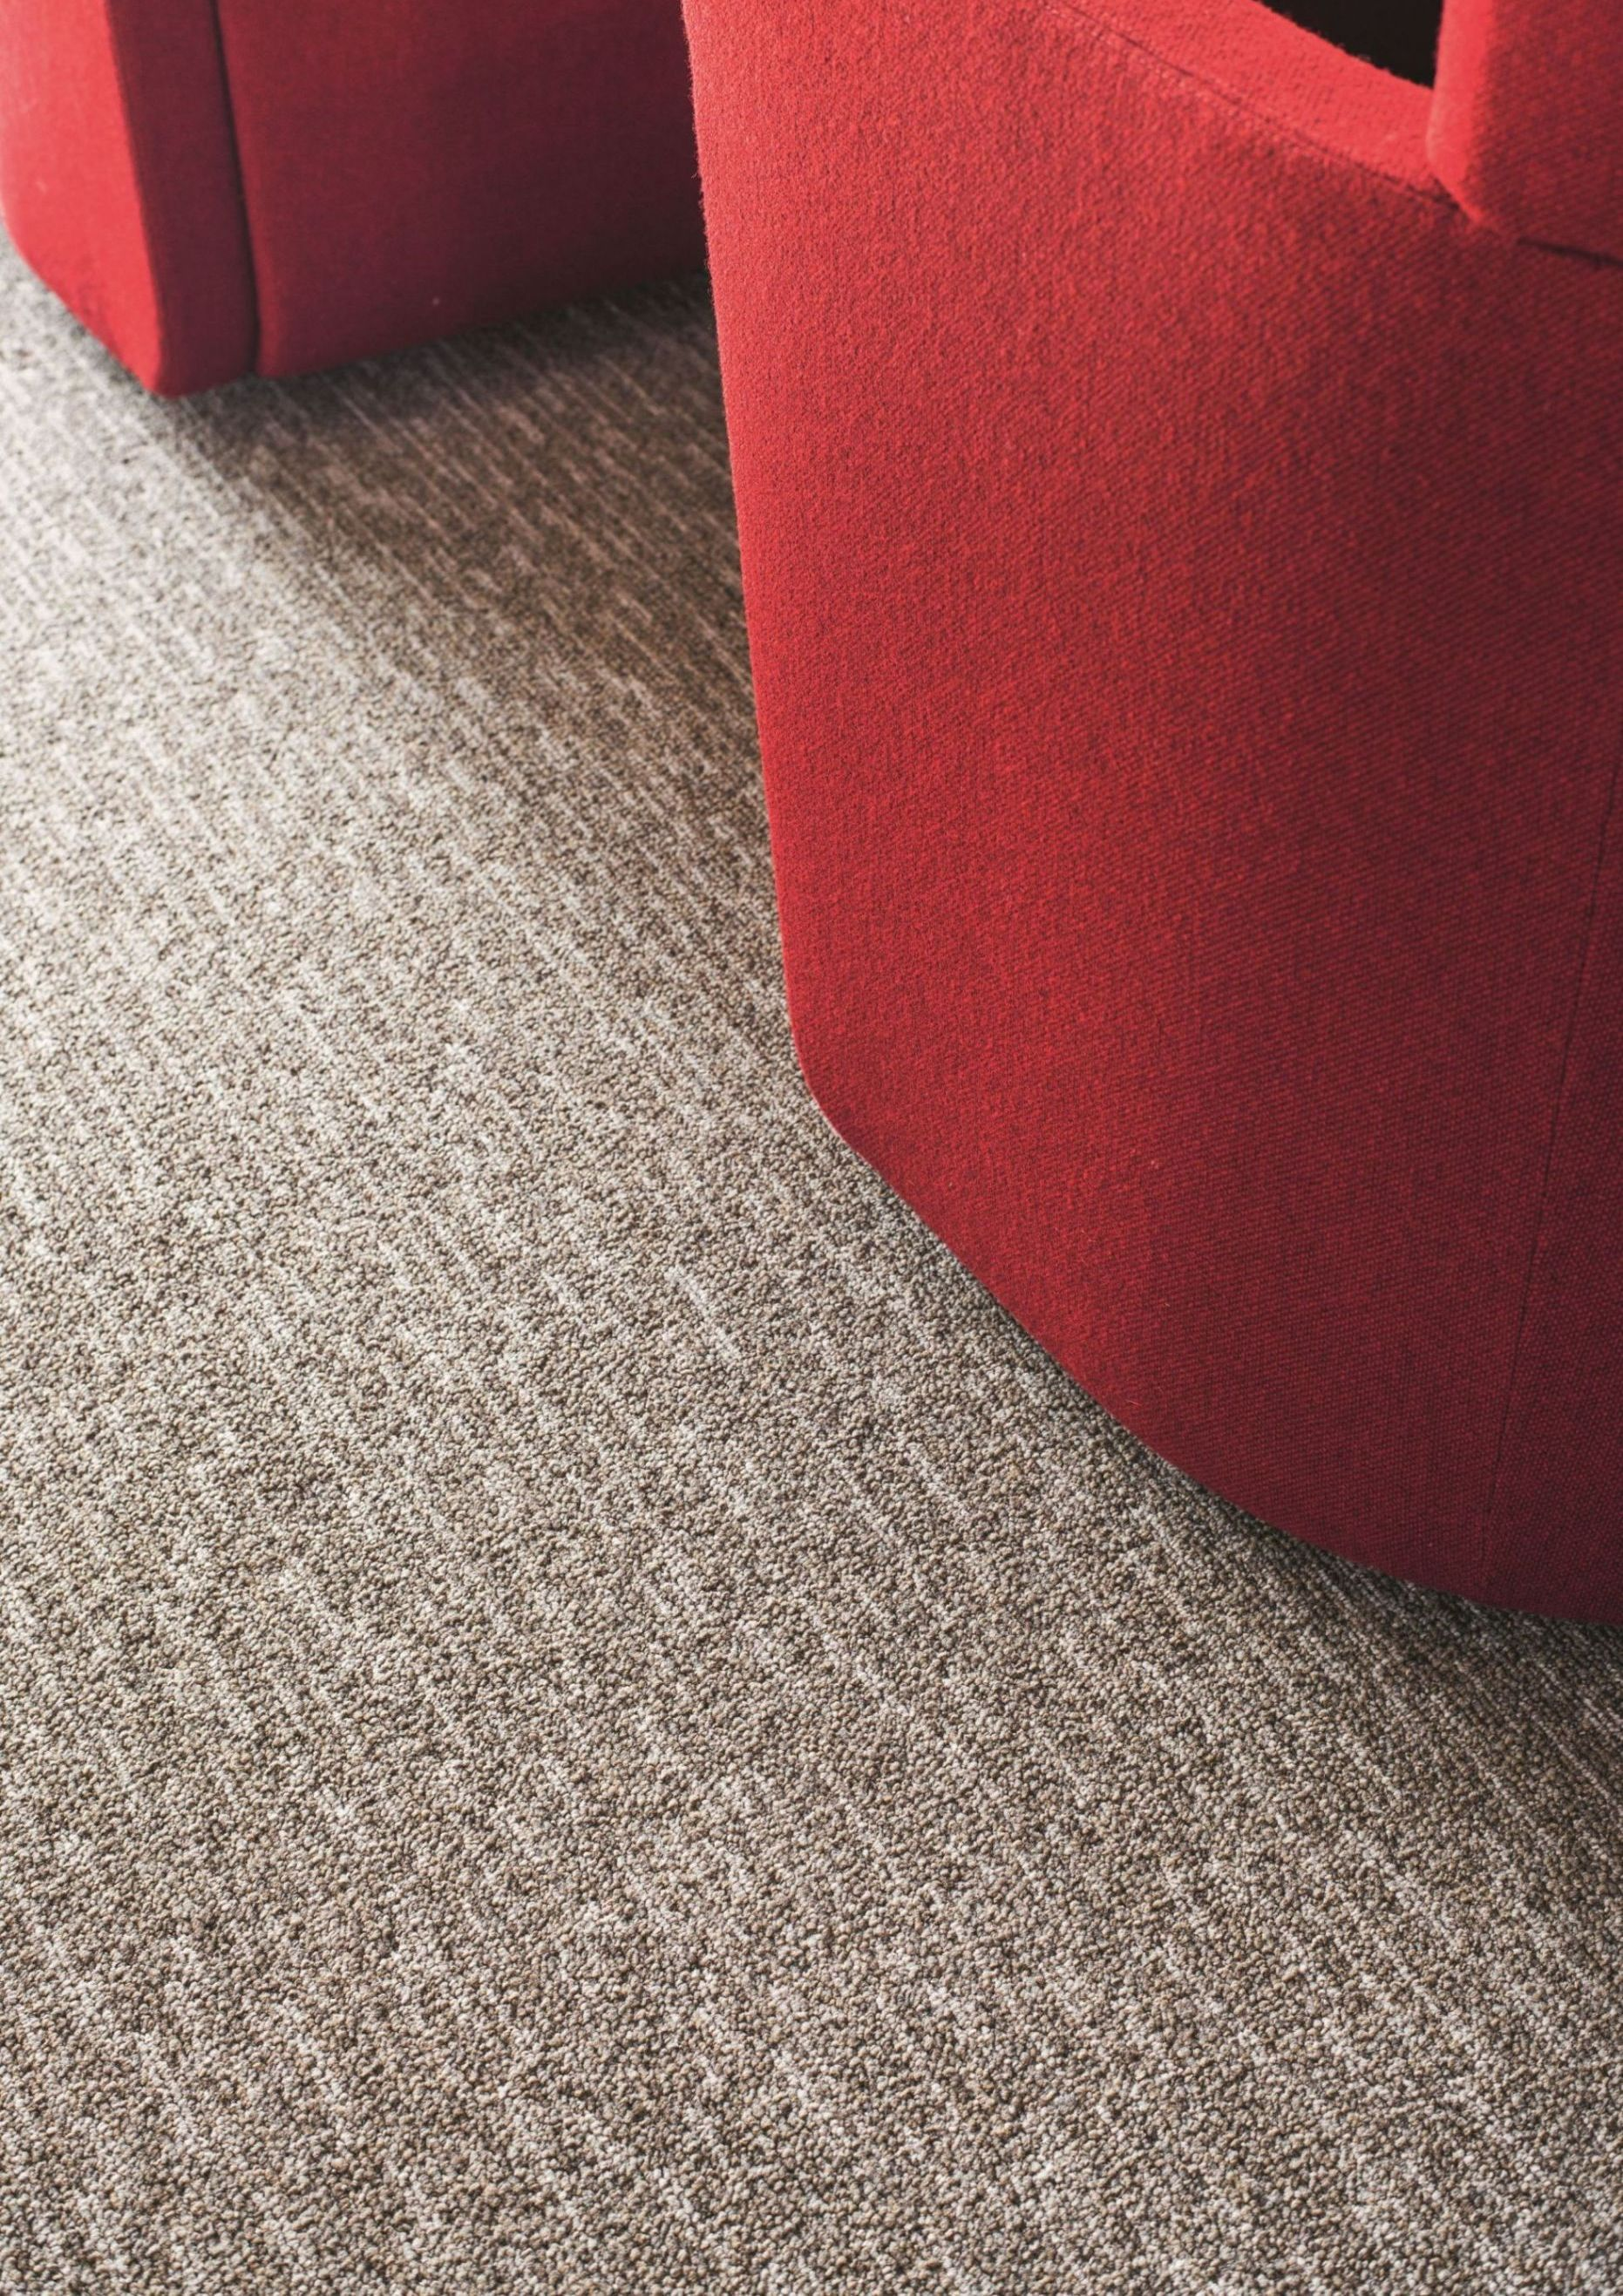 Commercial Rugs Christy Carpets Aviator Tile Carpet Tiles Commercial Carpet